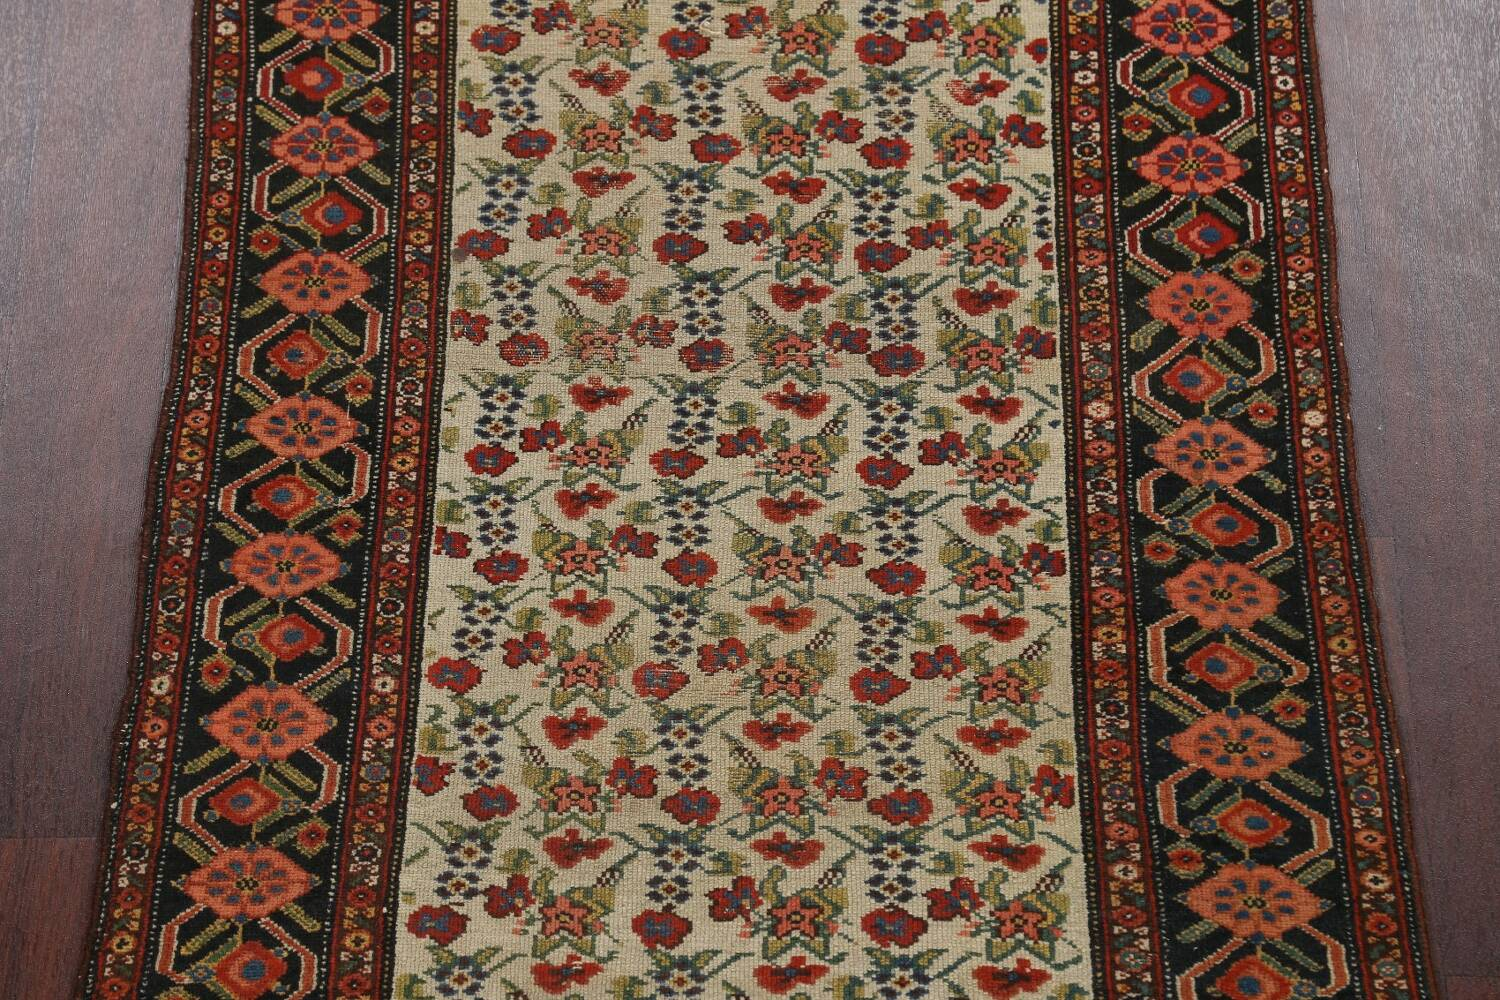 Pre-1900 Antique Vegetable Dye Malayer Persian Runner Rug 3x16 image 4